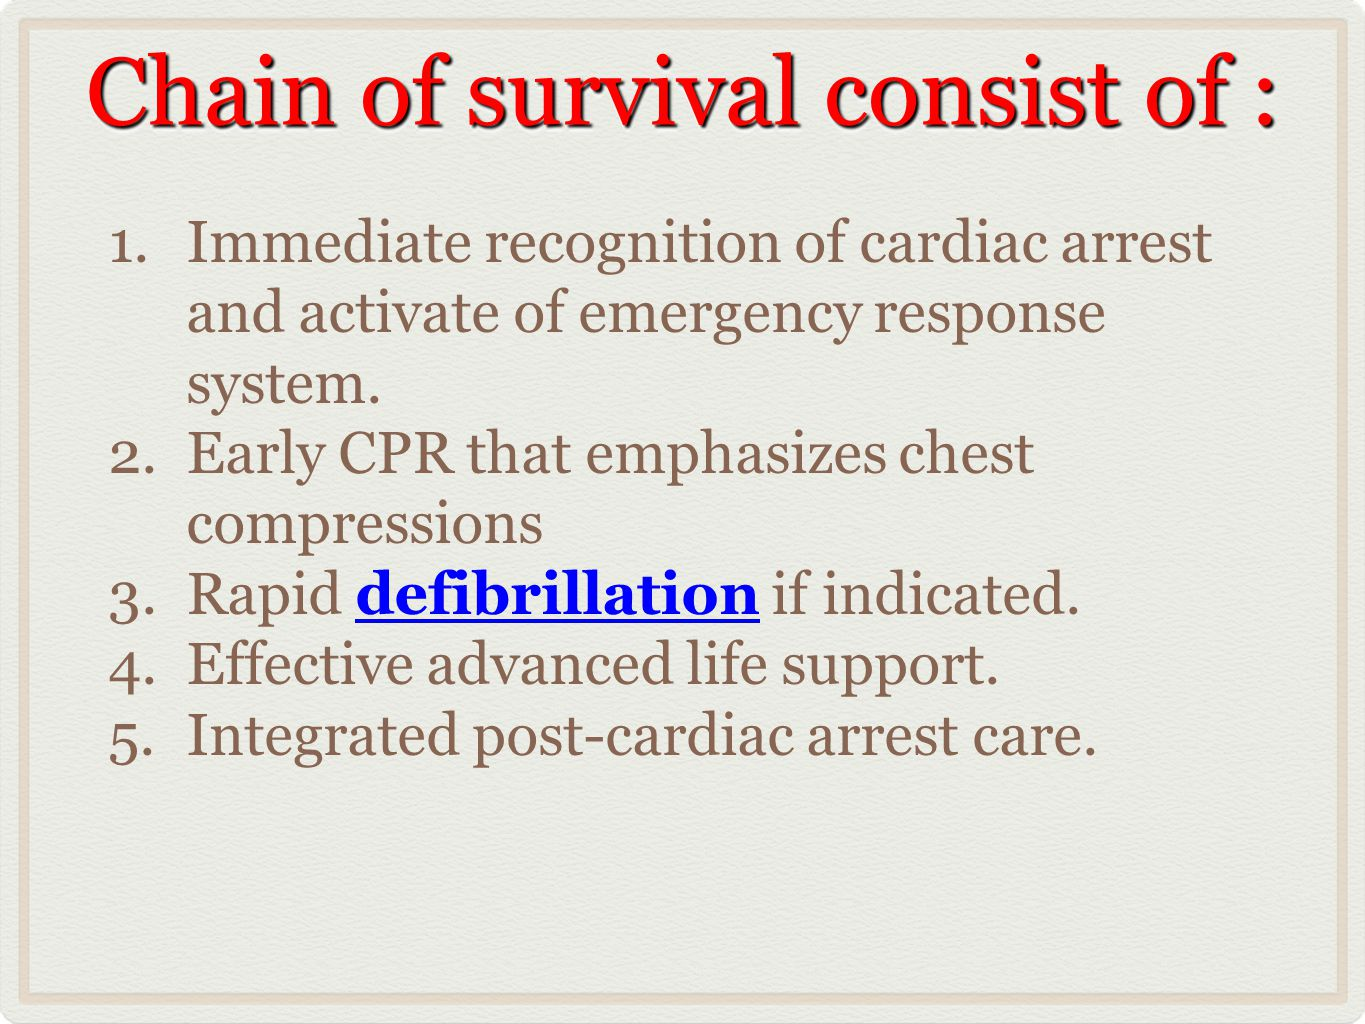 Chain of survival consist of : 1.Immediate recognition of cardiac arrest and activate of emergency response system. 2.Early CPR that emphasizes chest